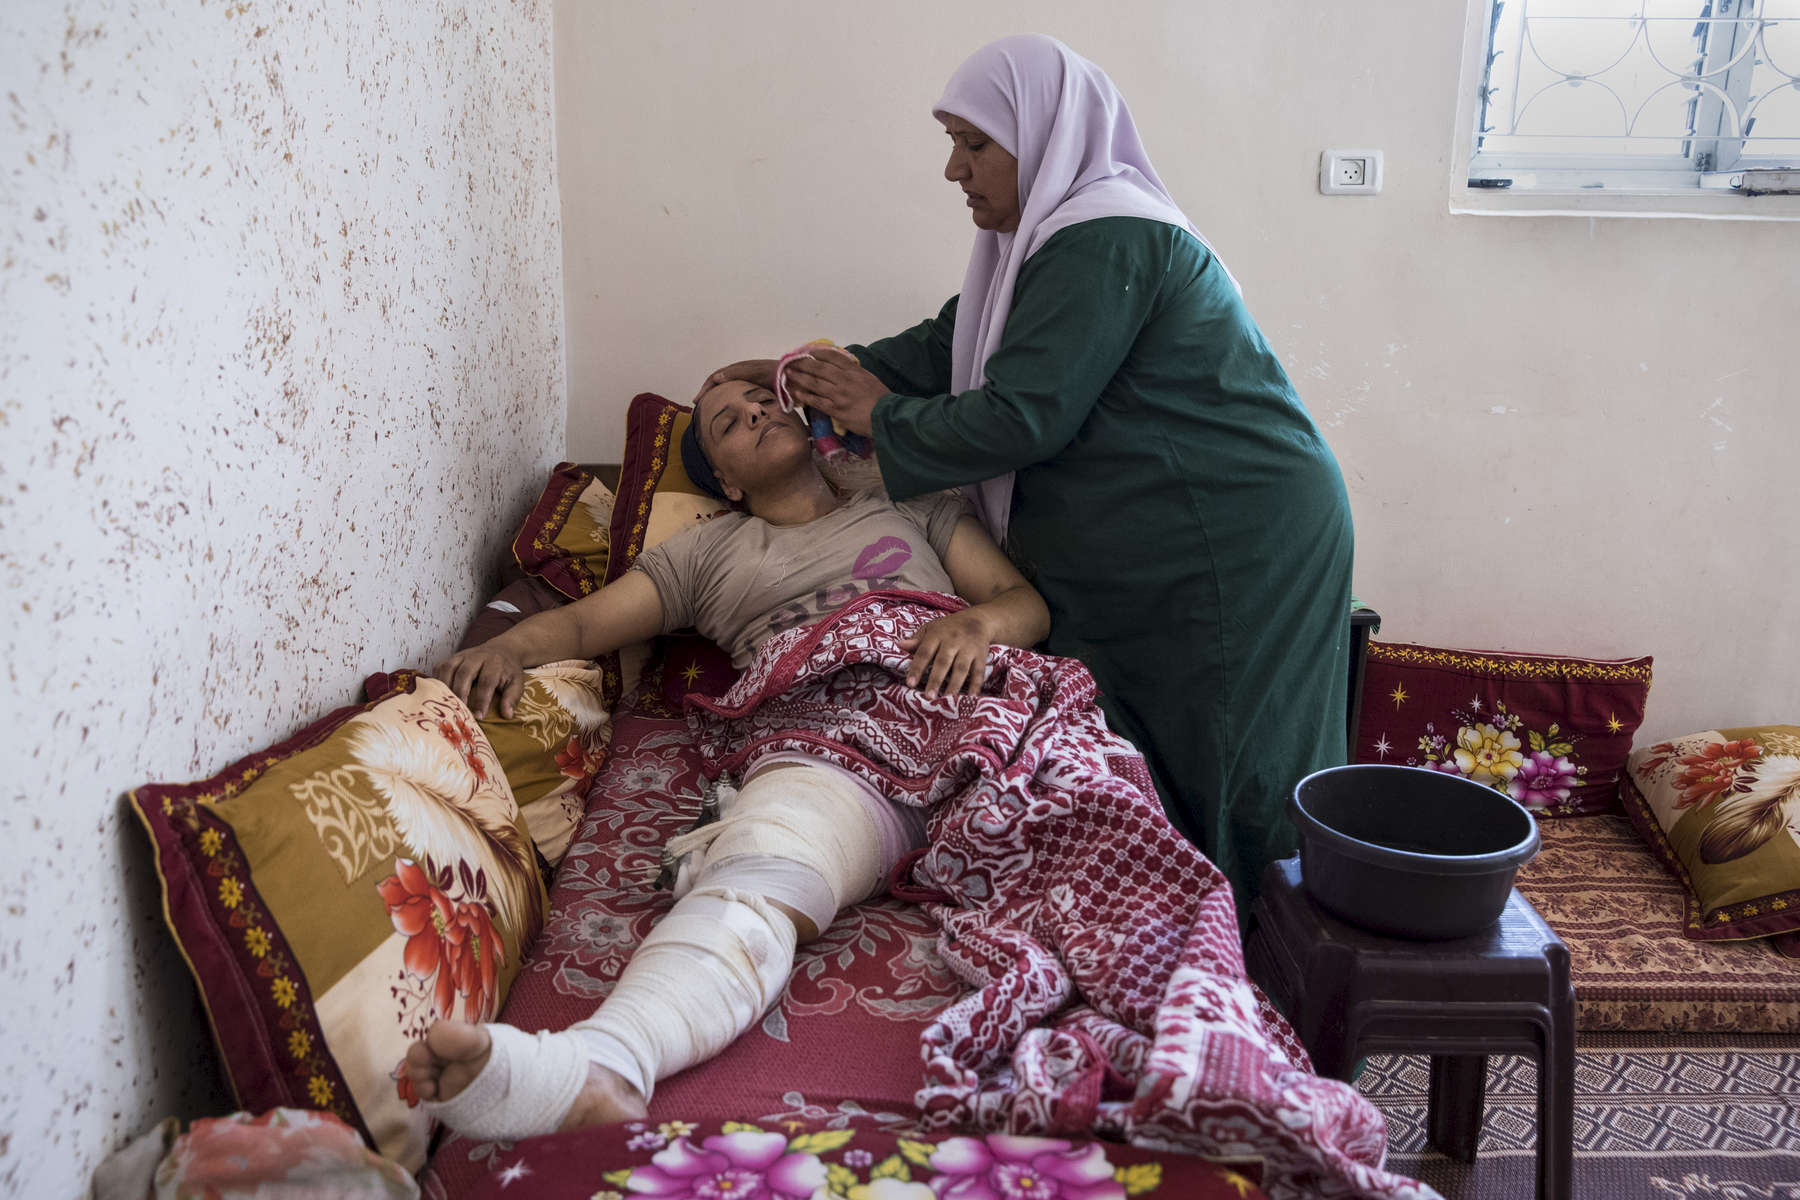 GAZA CITY, GAZA STRIP- MAY 25,2018 : Dawlat Fawzi Hamadin, 33, from Beit Hanoun, gets washed by her mother on May 25, 2018 in Gaza. She was shot on May 14th,  damaging the main artery of the heart with severe tissue damage. Dawlat was pronounced dead, then after an operation that lasted for seven hours she survived. She is the only breadwinner of the family and worked as a hairdresser. Everyone is well aware that Gaza's two million inhabitants are trapped in a cycle of violence and poverty, created by policies and political decisions on both sides. The problems and complications affecting Gaza today are overwhelming. The world, seemingly accustomed to the suffering of the Gazan people turns a blind eye. (Photo by Paula Bronstein )